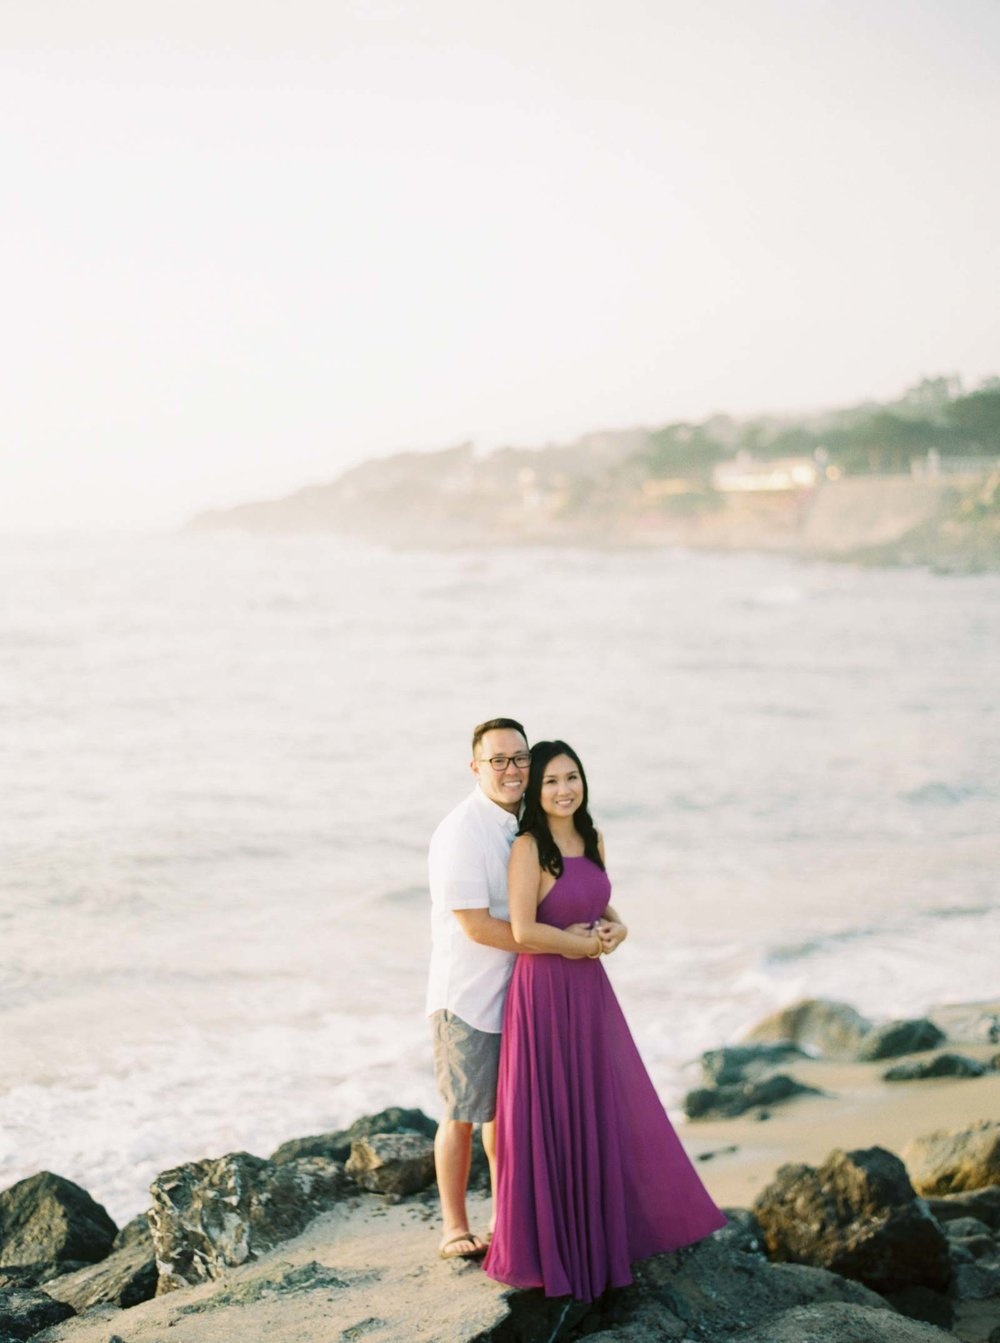 Moss-beach-engagement-photos-half-moon-bay-23.jpg